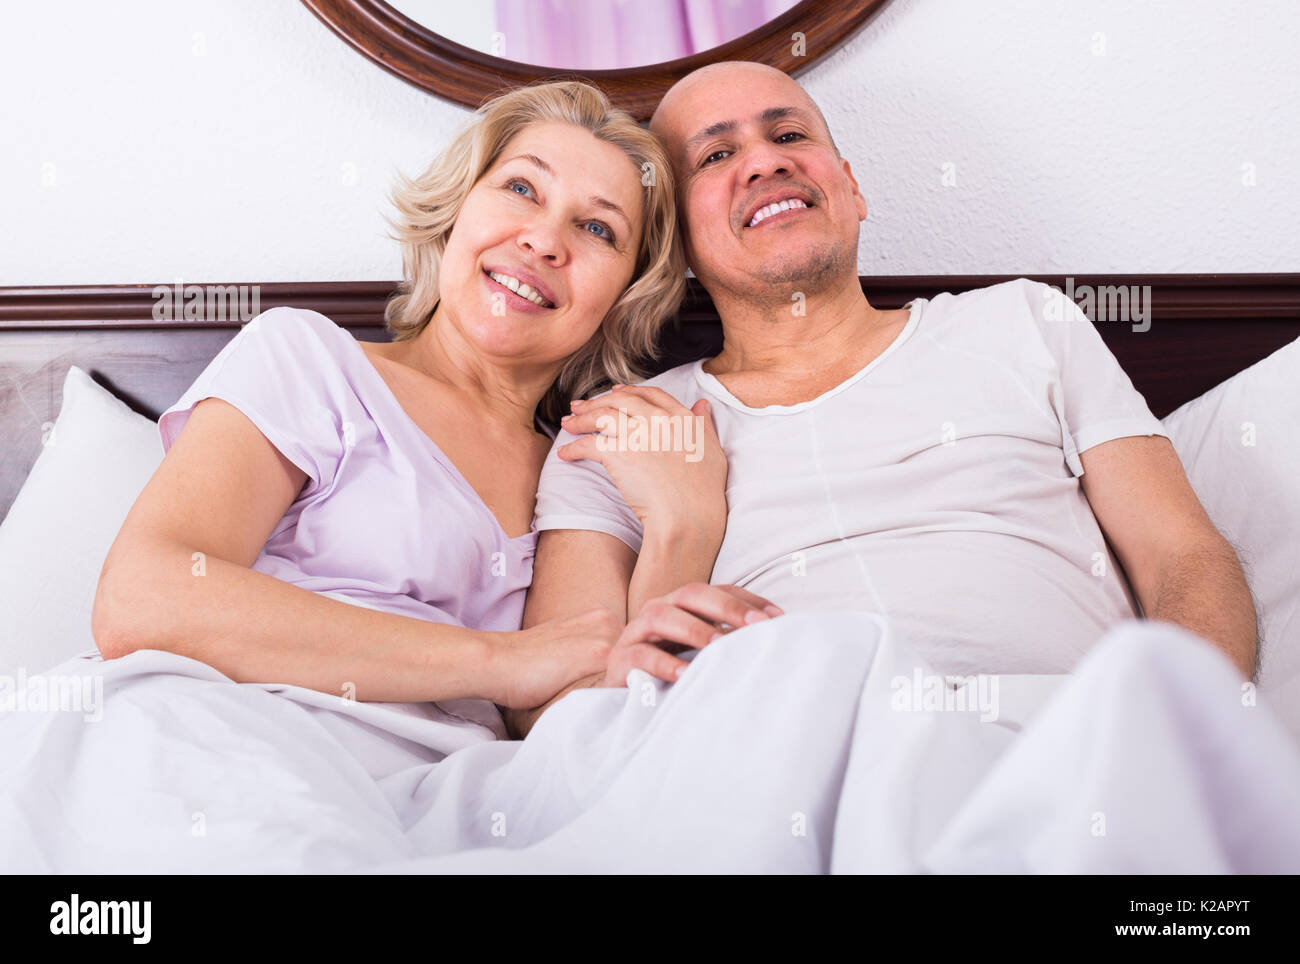 Positive mature adults posing in family bed and smiling - Stock Image